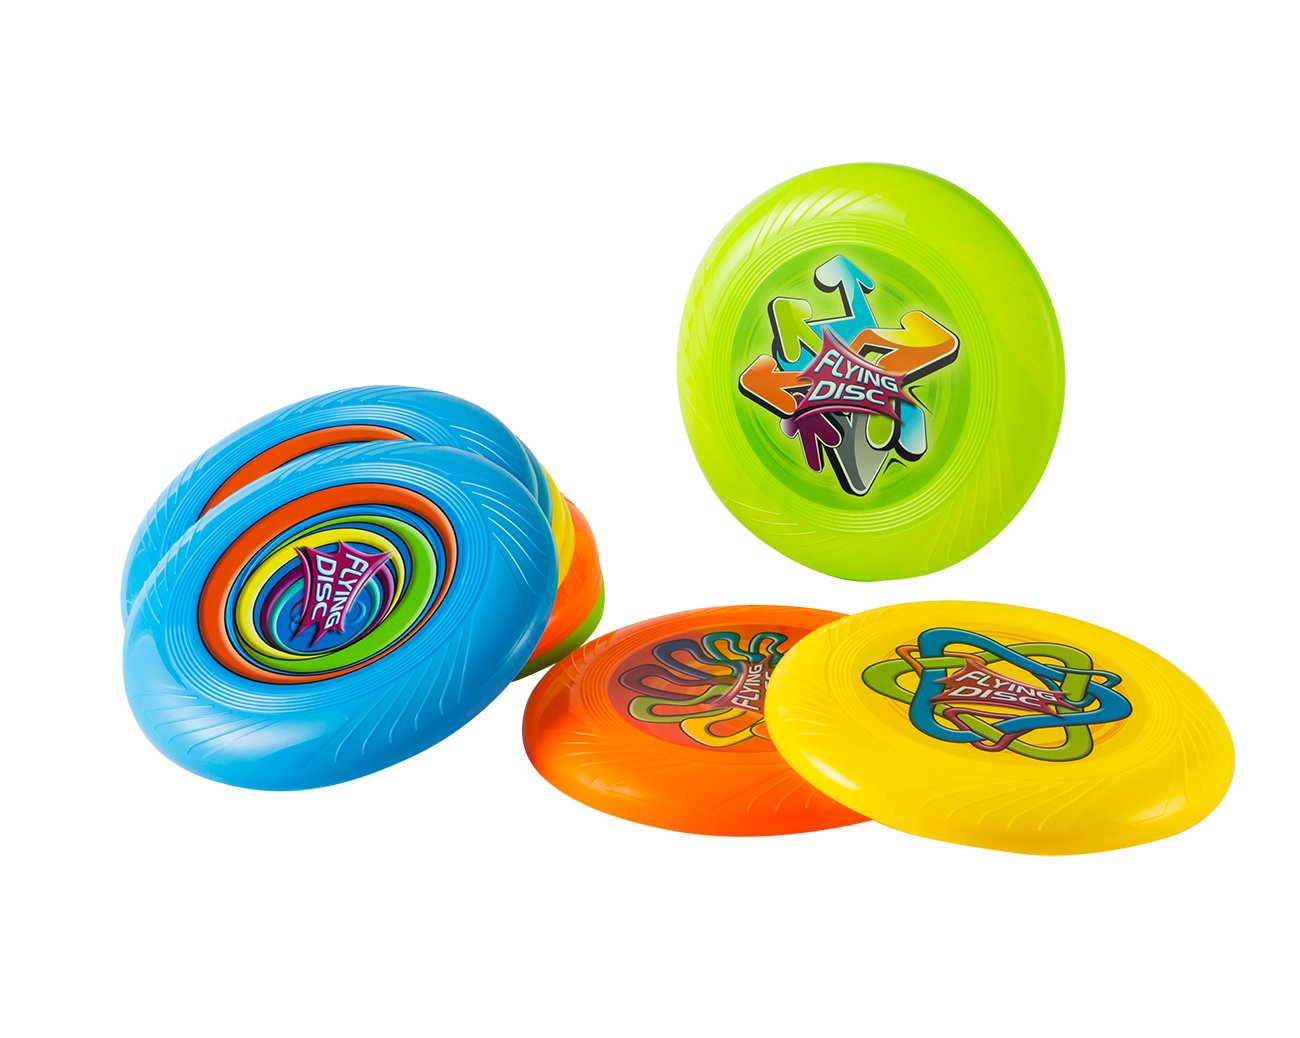 Flying Disc – 12 Pack Plastic Throwing Discs for Kids, Disc Toss for Outdoor Sports, Block Parties, Sunshine Events, Multicolored, 10 Inches in Diameter